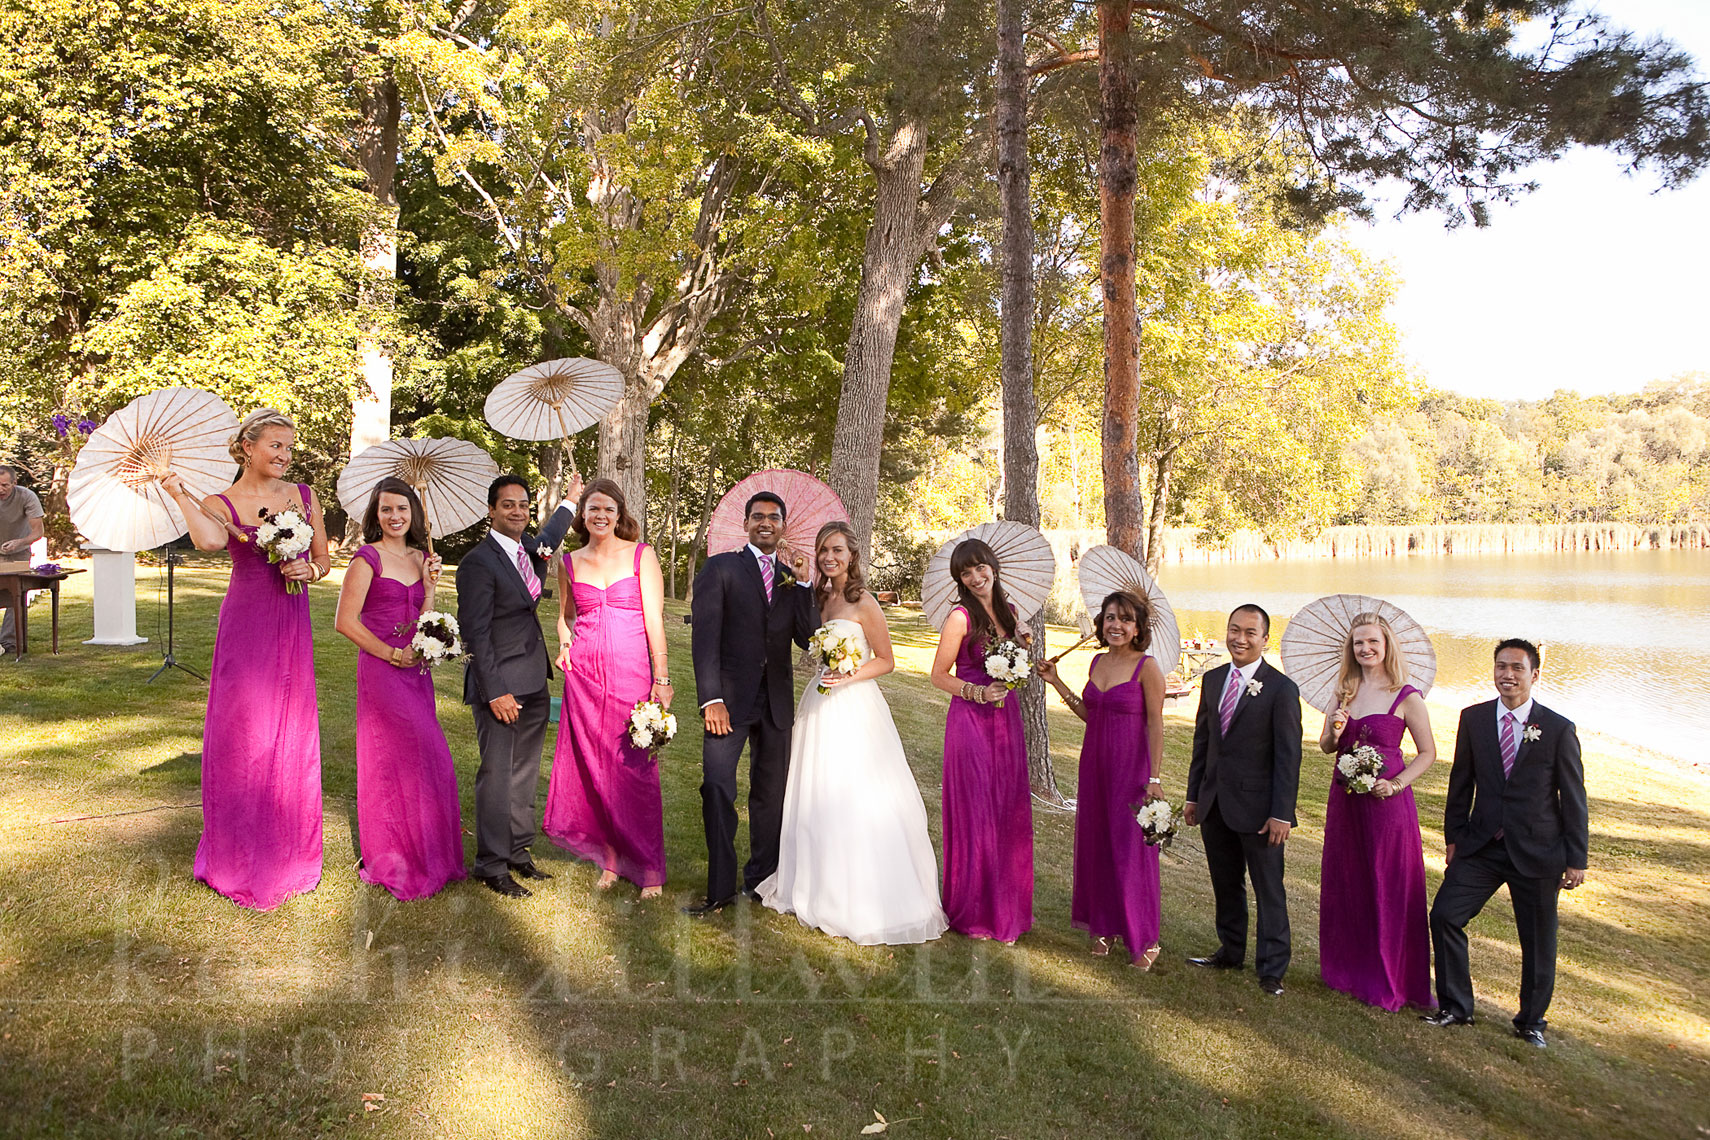 Kathi_Littwin_Photography_Mashomack_wedding_3017